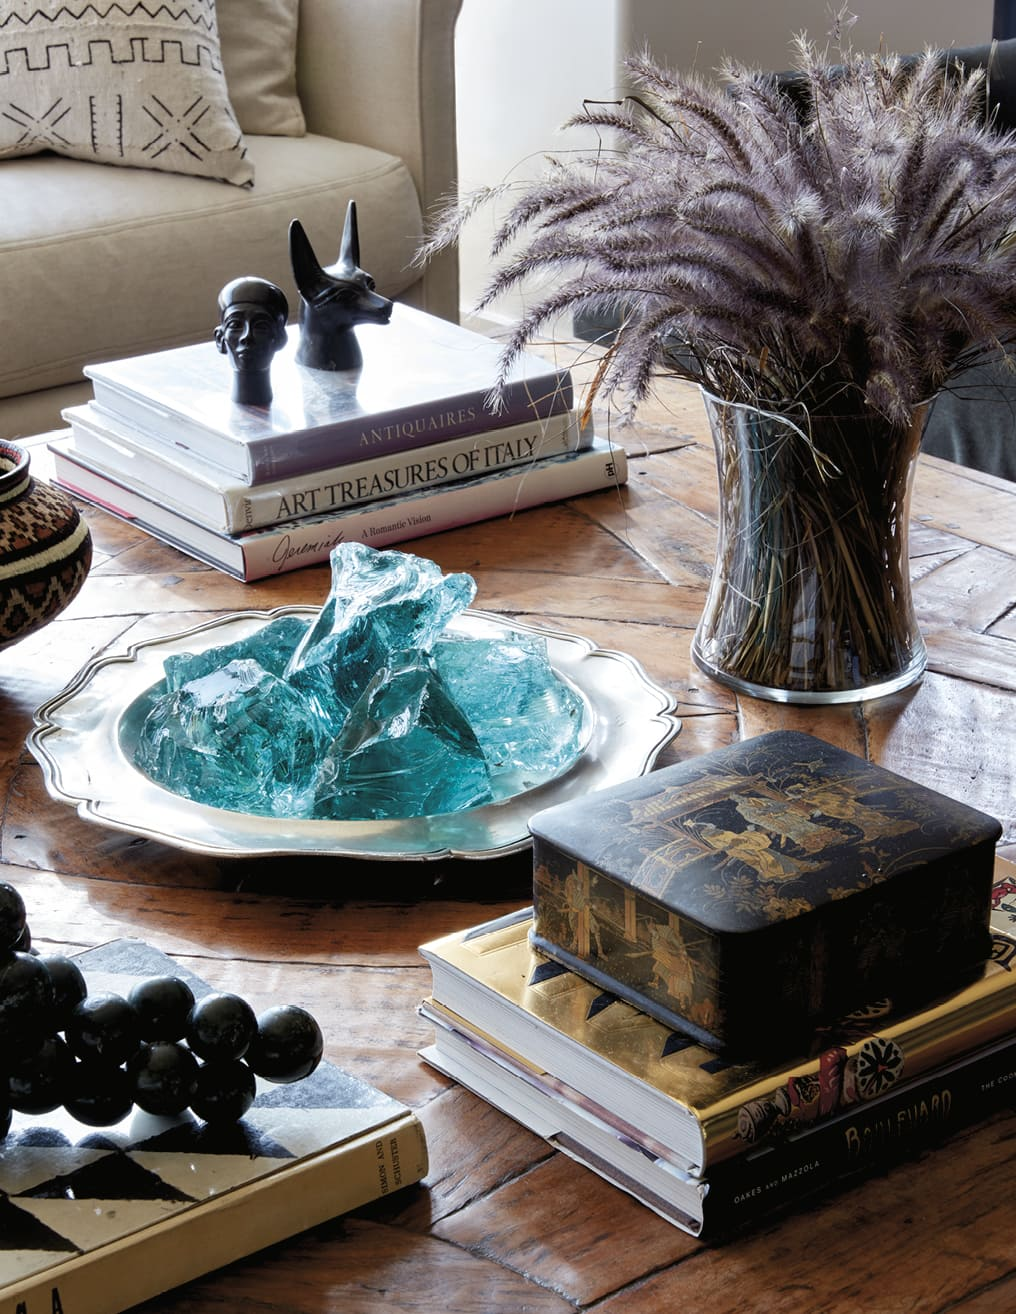 Closeup of items on a coffee table, including a plate of blue stones